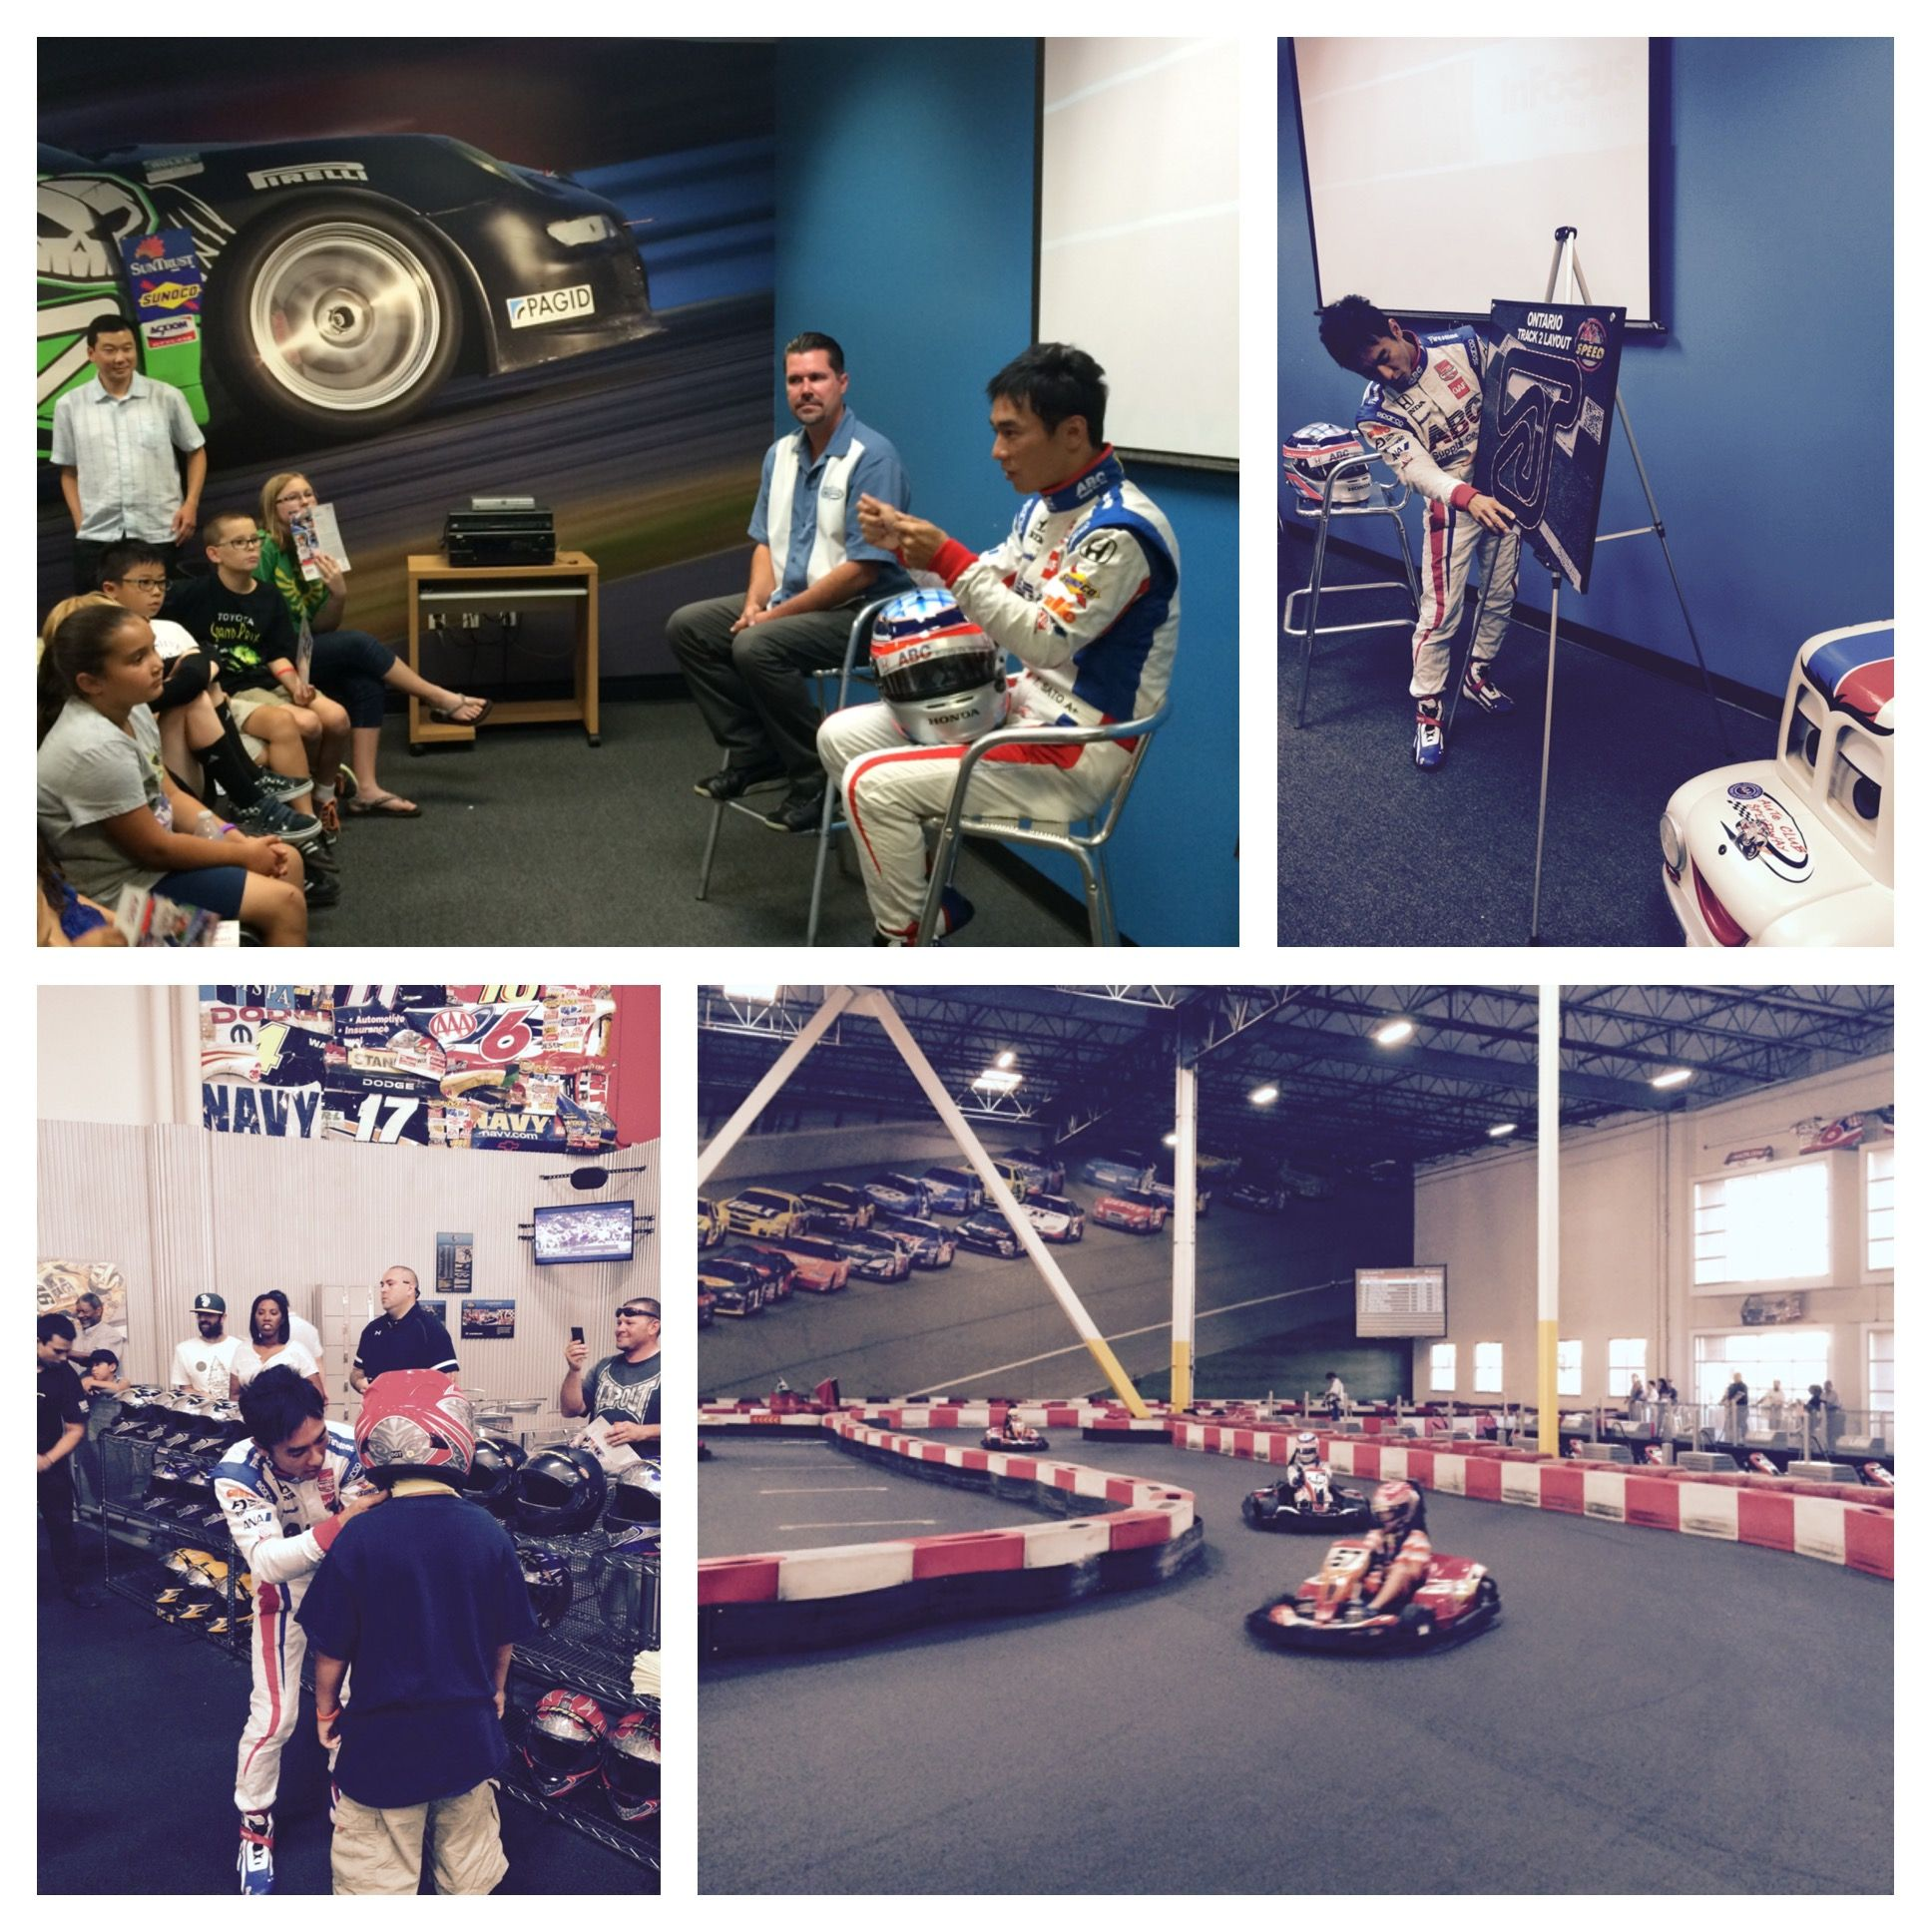 IndyCar driver, Takuma Sato, visits K1 Speed in Ontario